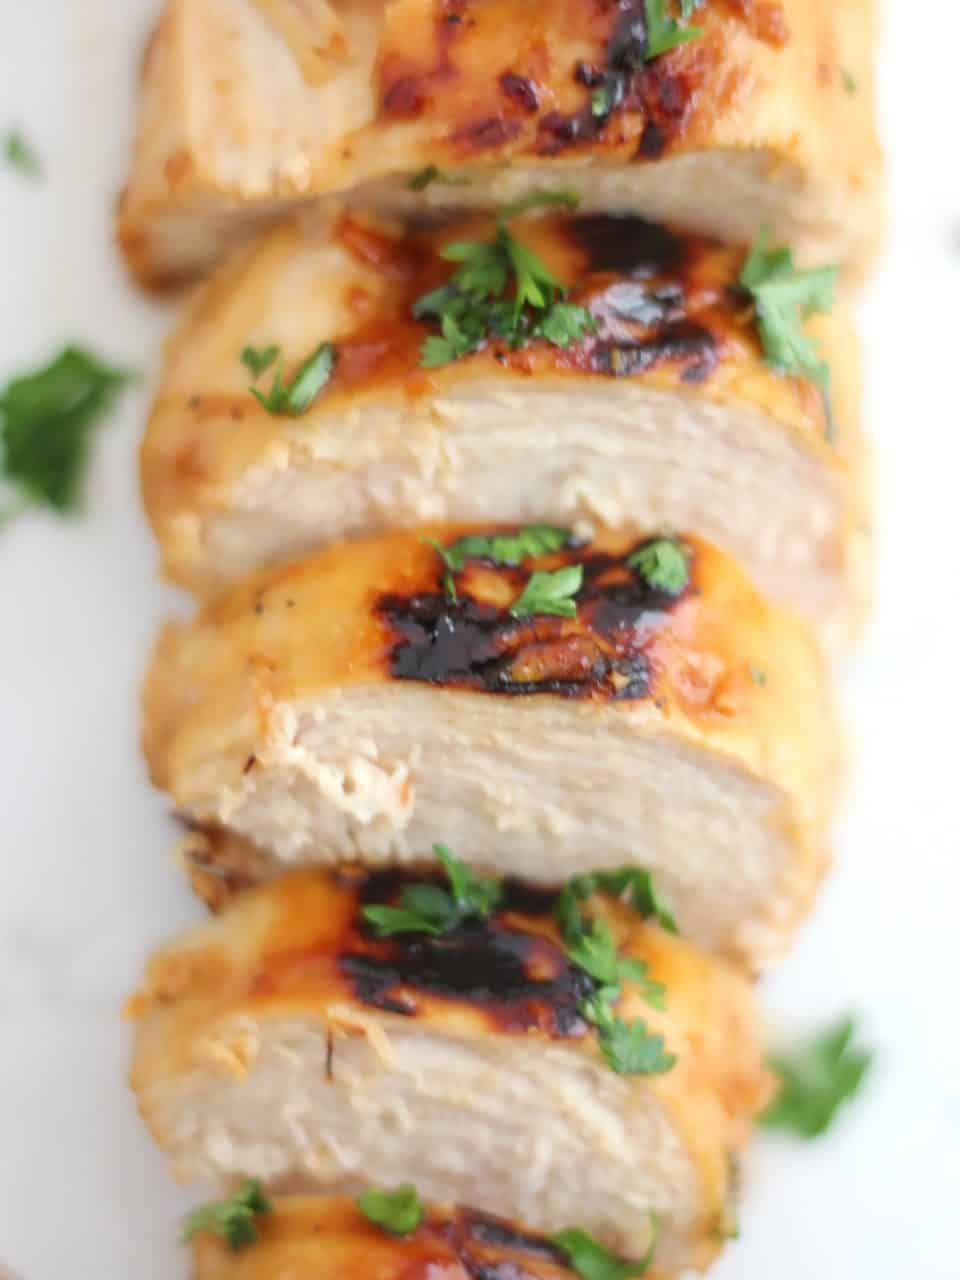 Overhead shot of the sliced chicken breast.